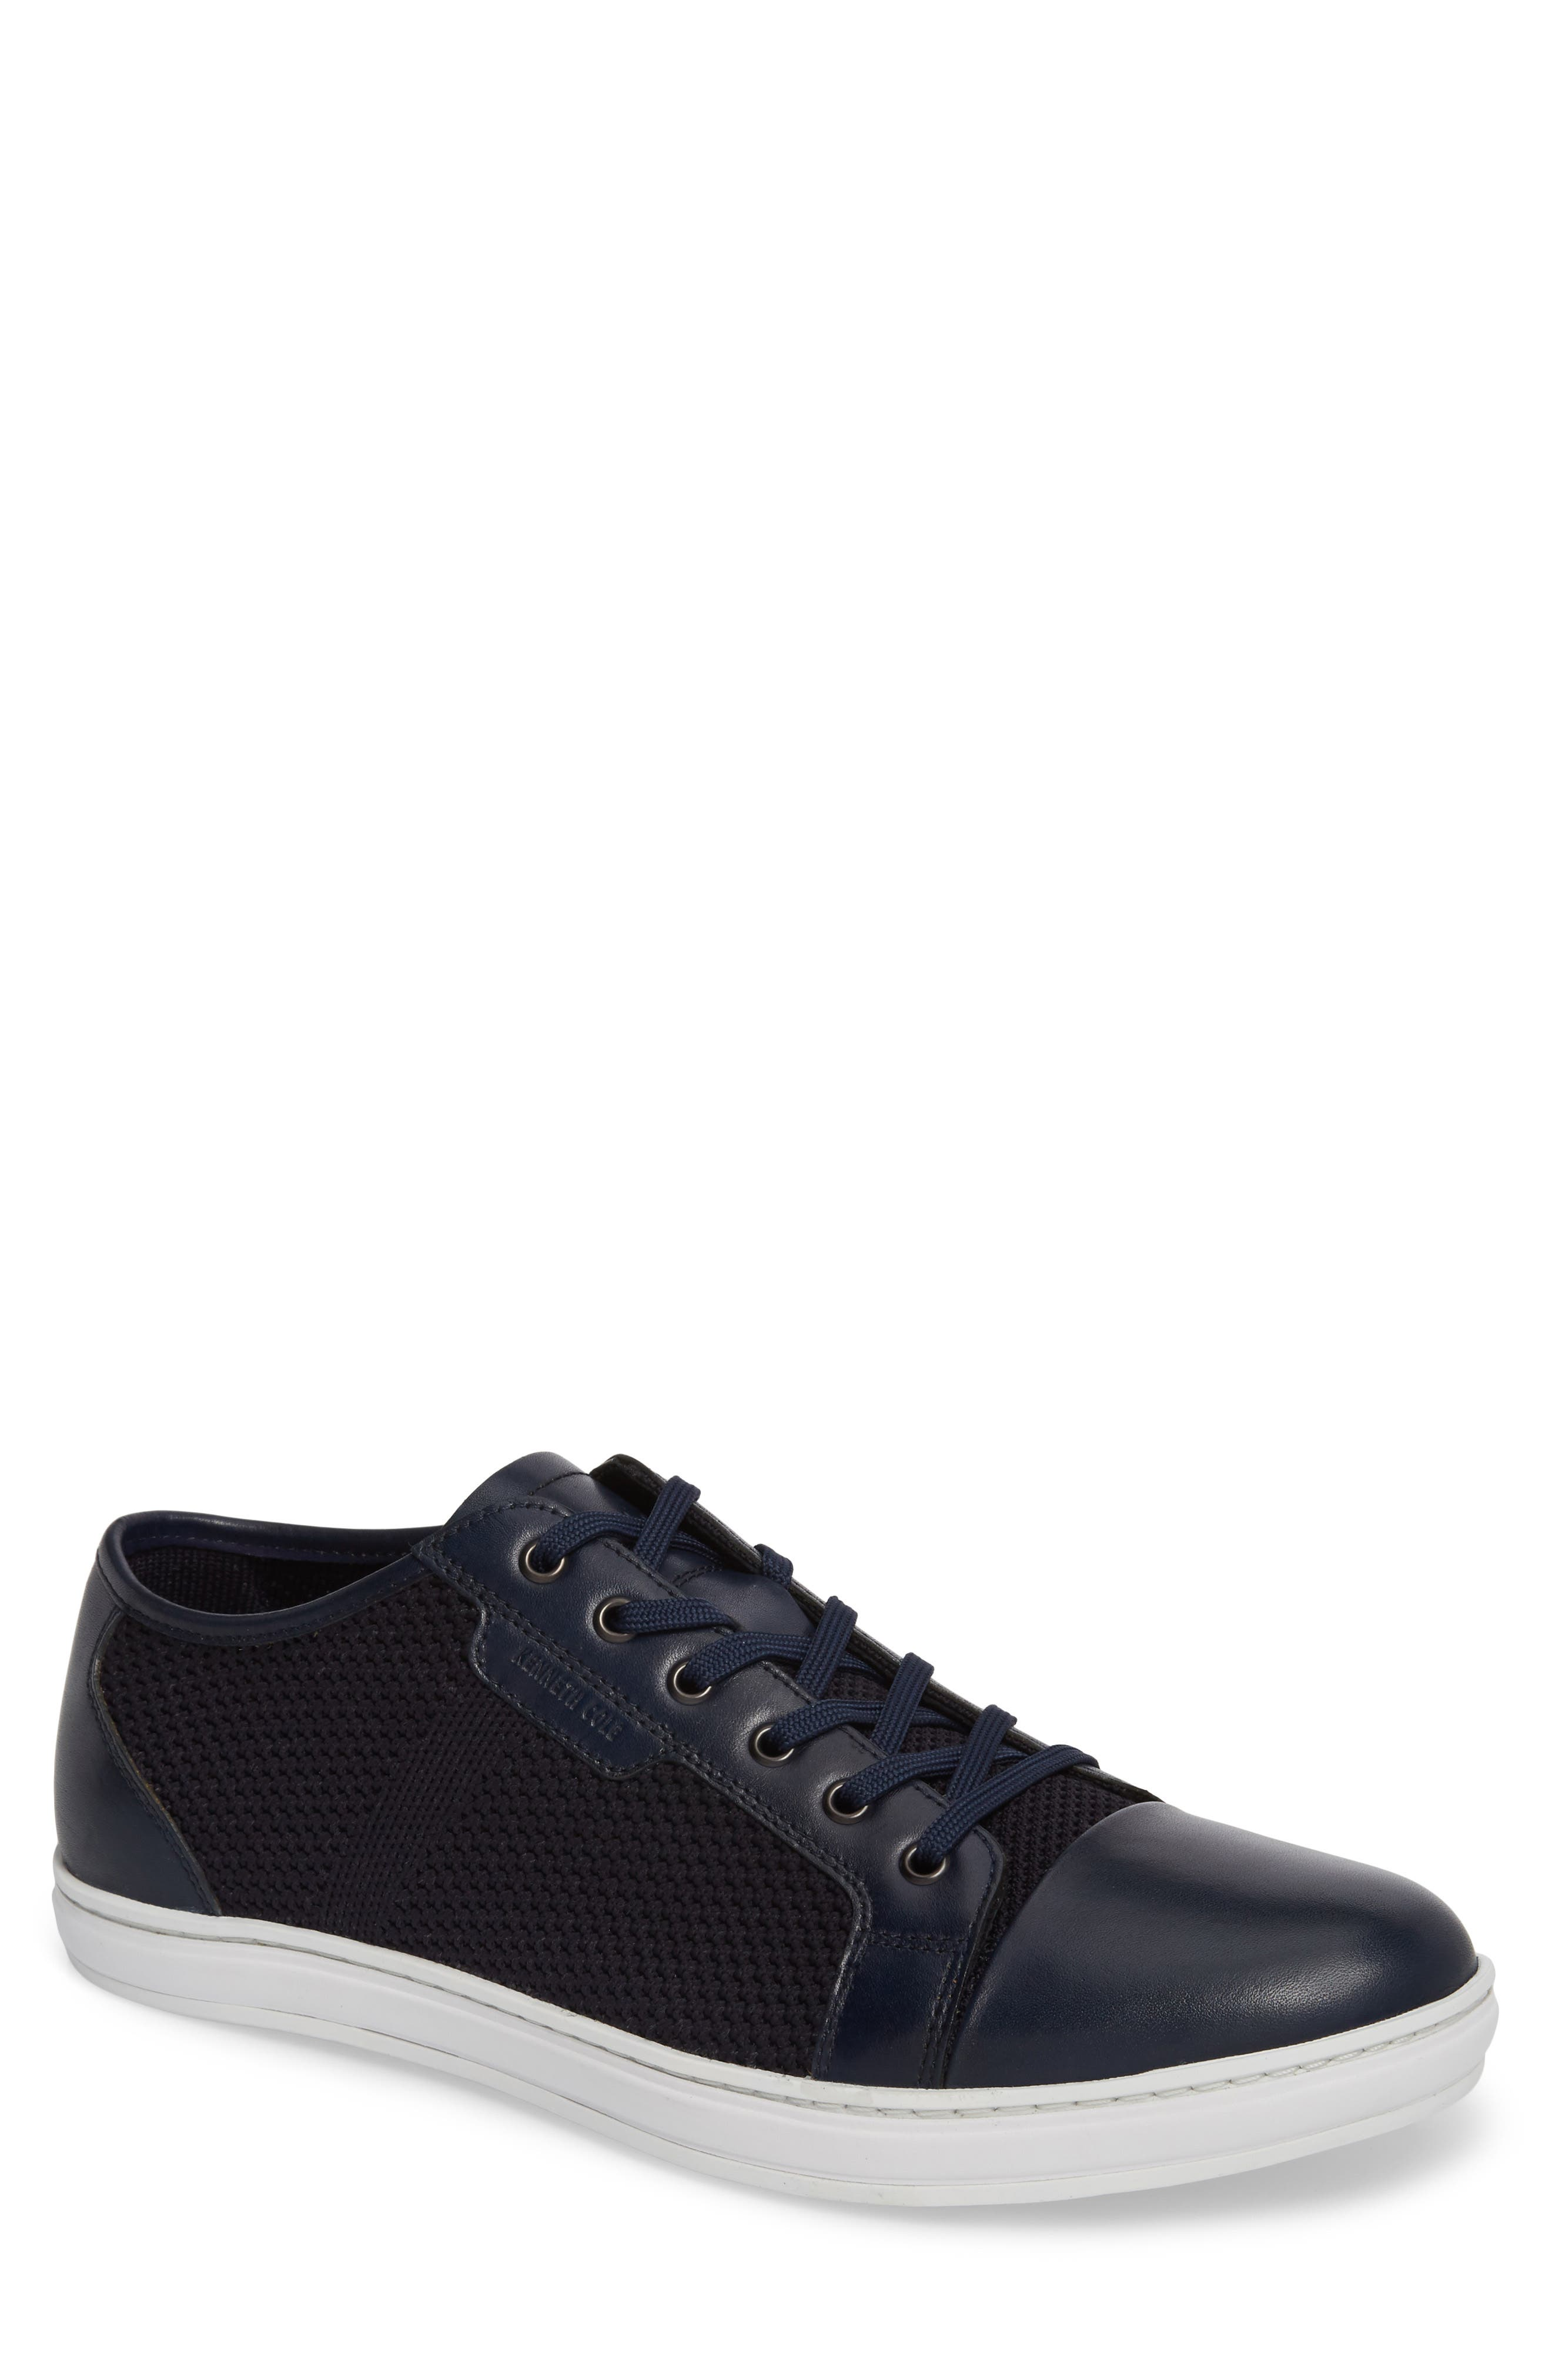 Knit Low Top Sneaker,                         Main,                         color, Navy Leather